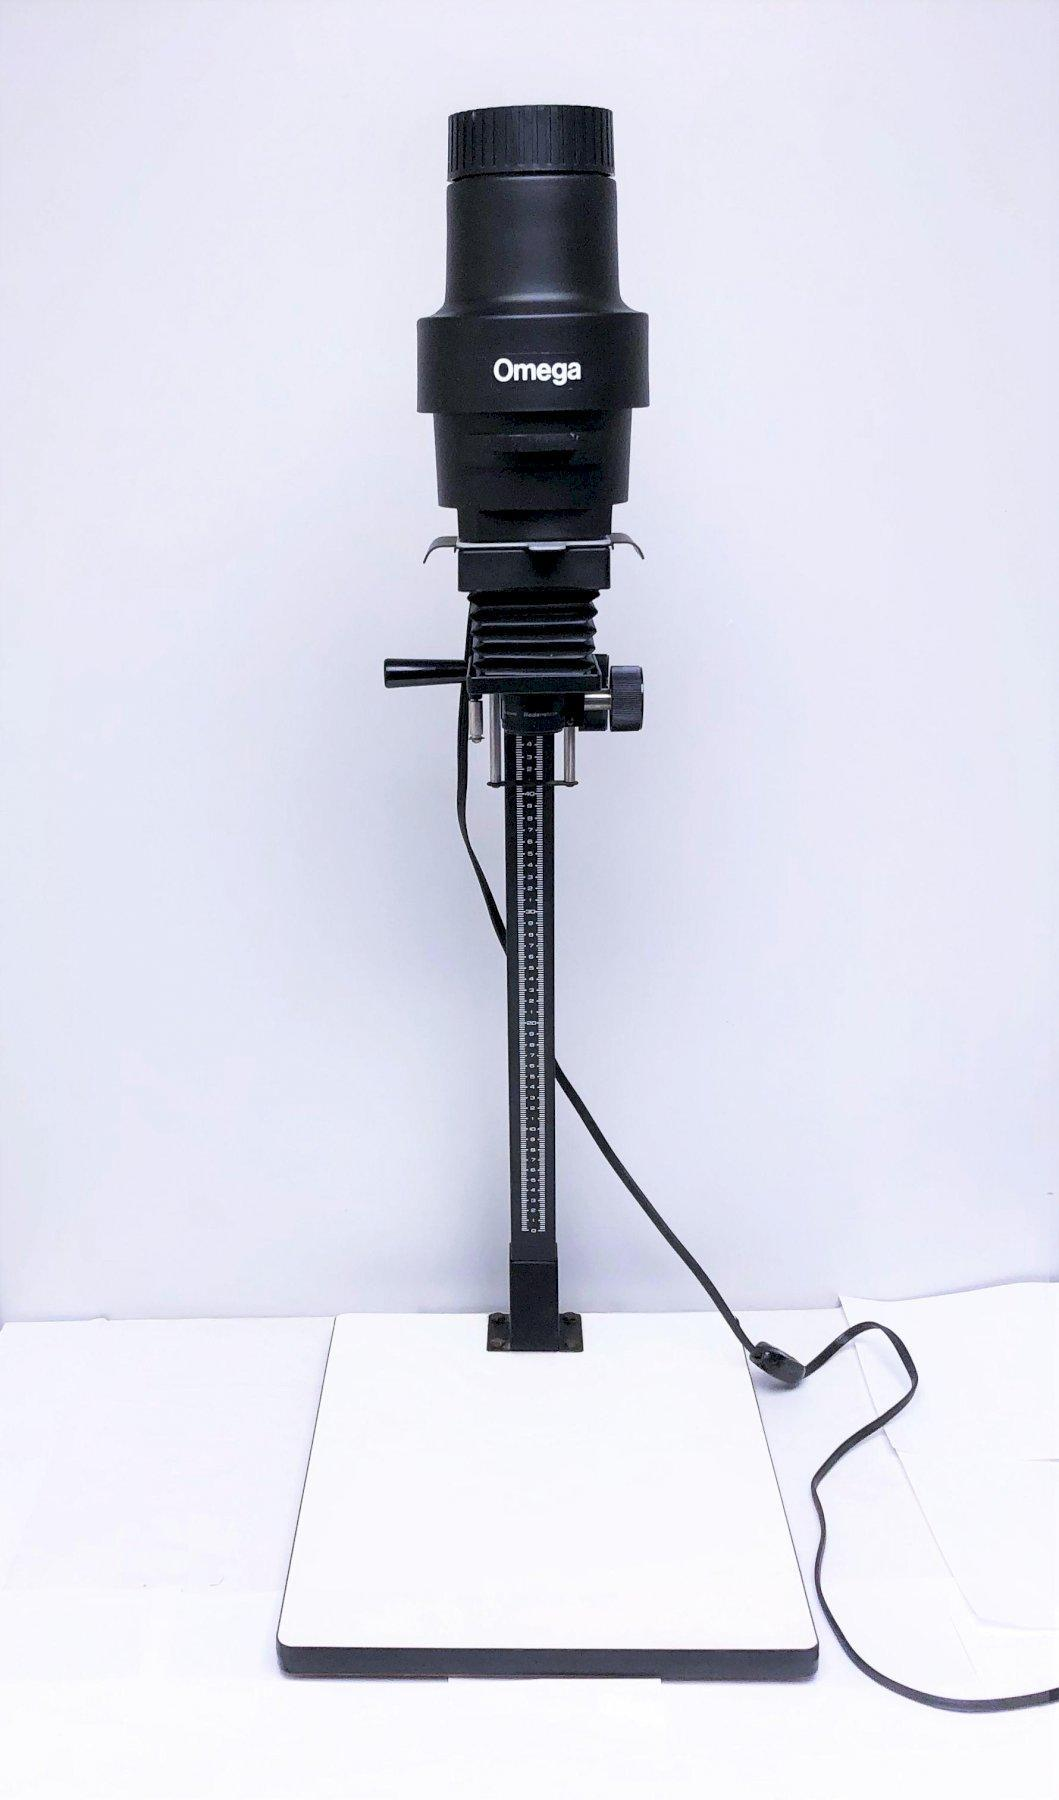 OMEGA ENLARGER MODEL C700 6 x 7 CONDENSER: STOCK #13703